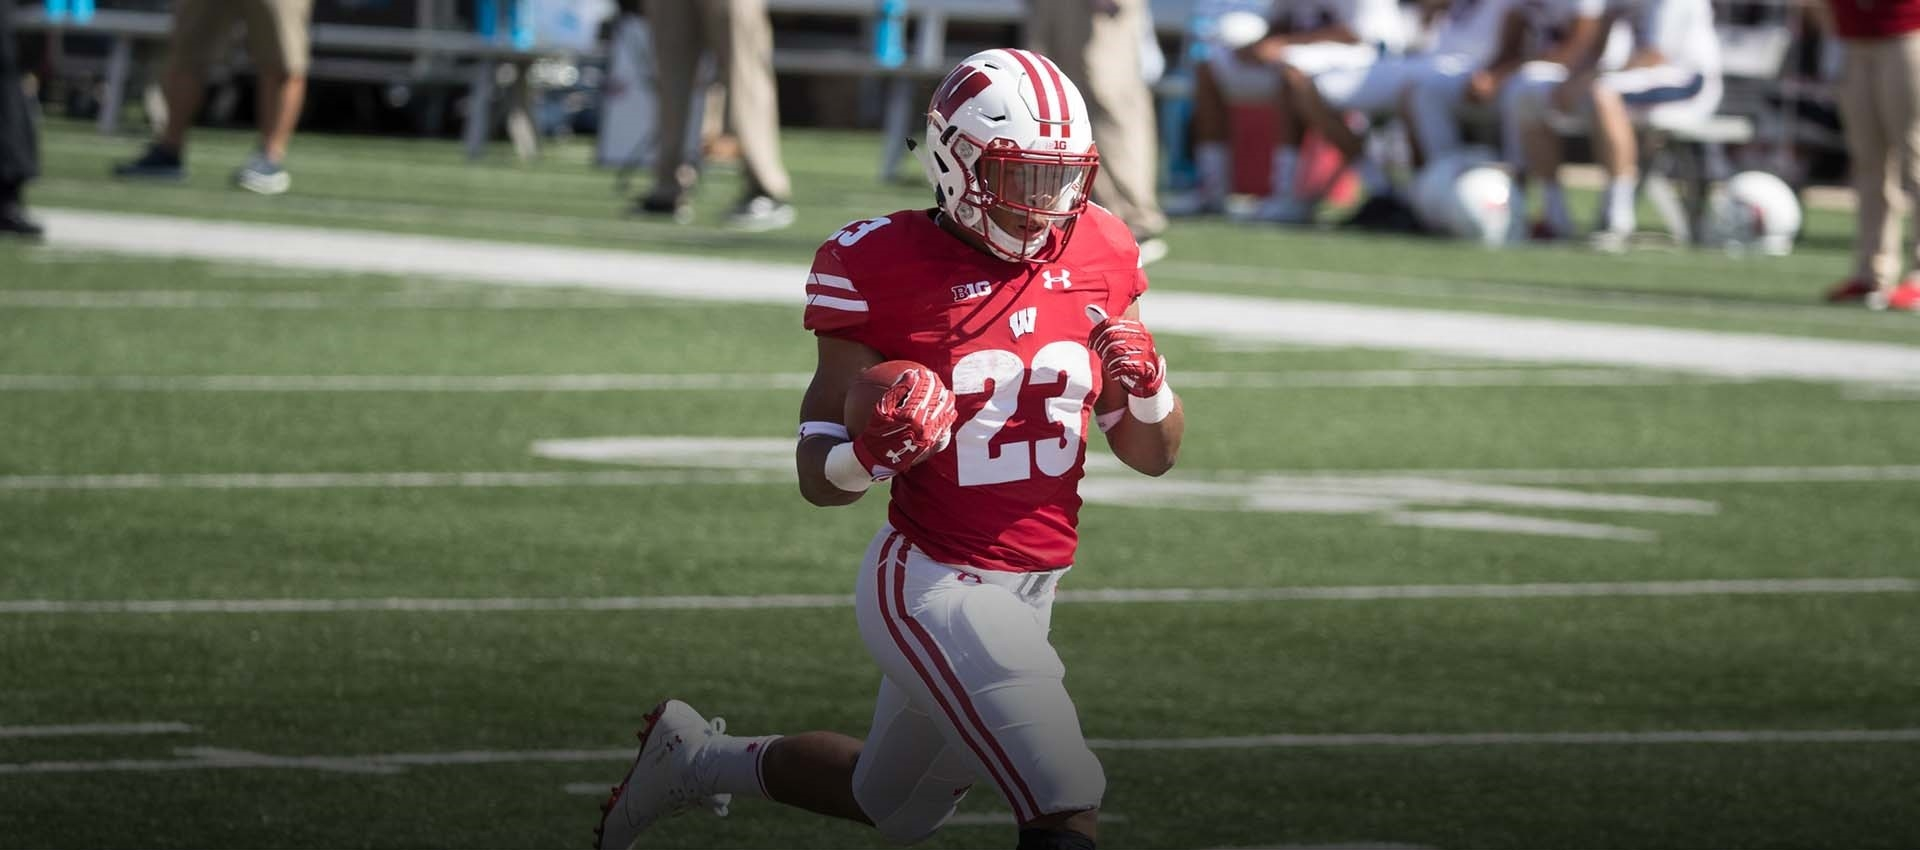 No. 10 Badgers get Jonathan Taylor-made big plays from RB